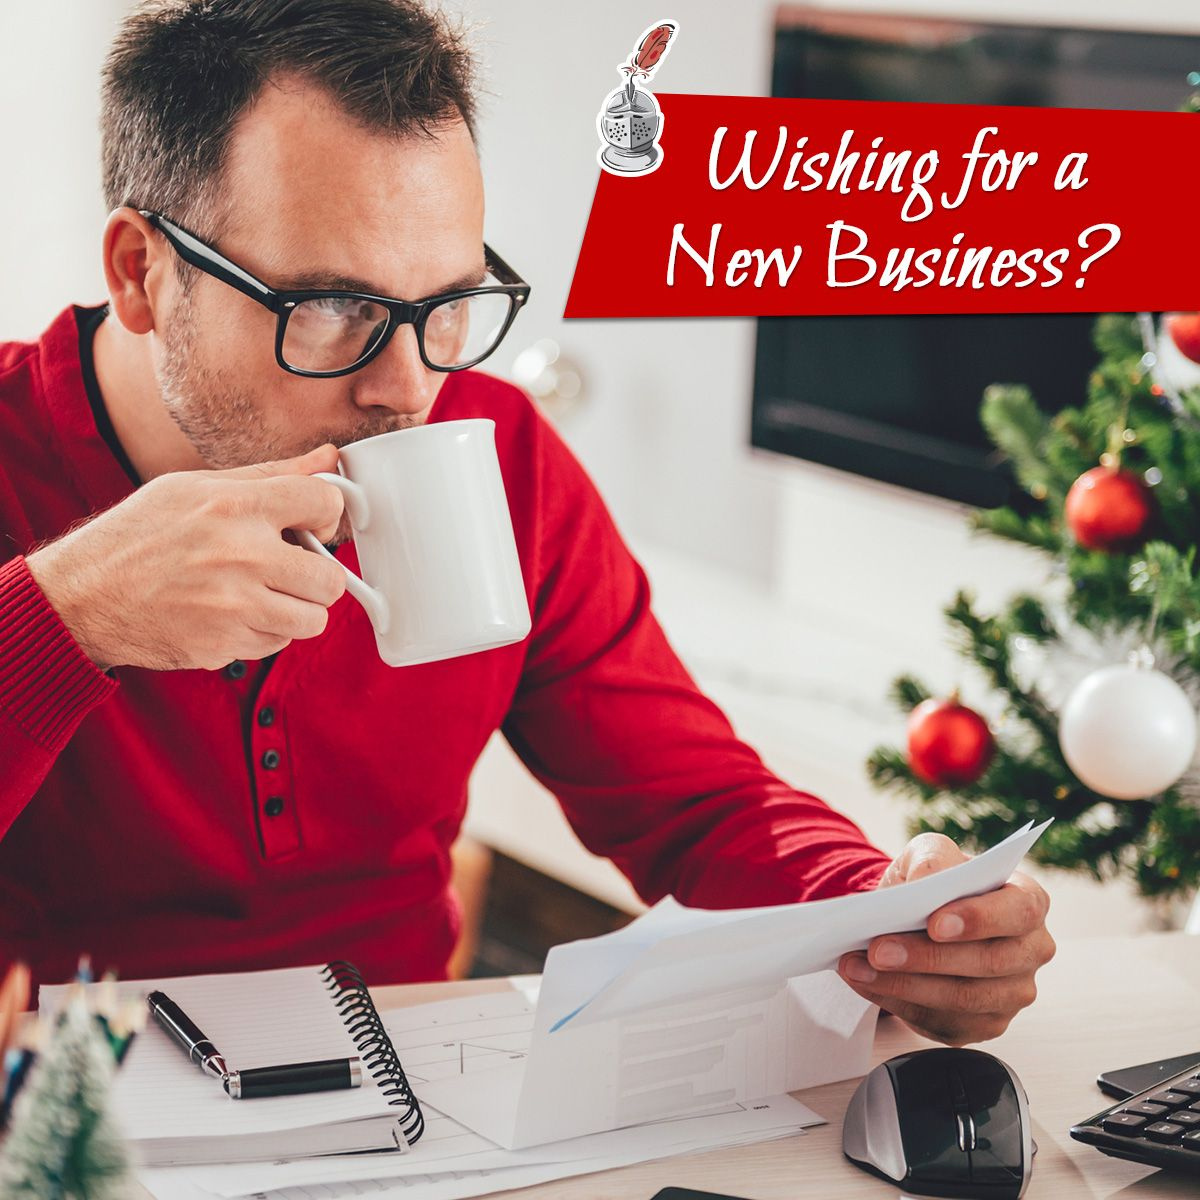 Wishing for a New Business?